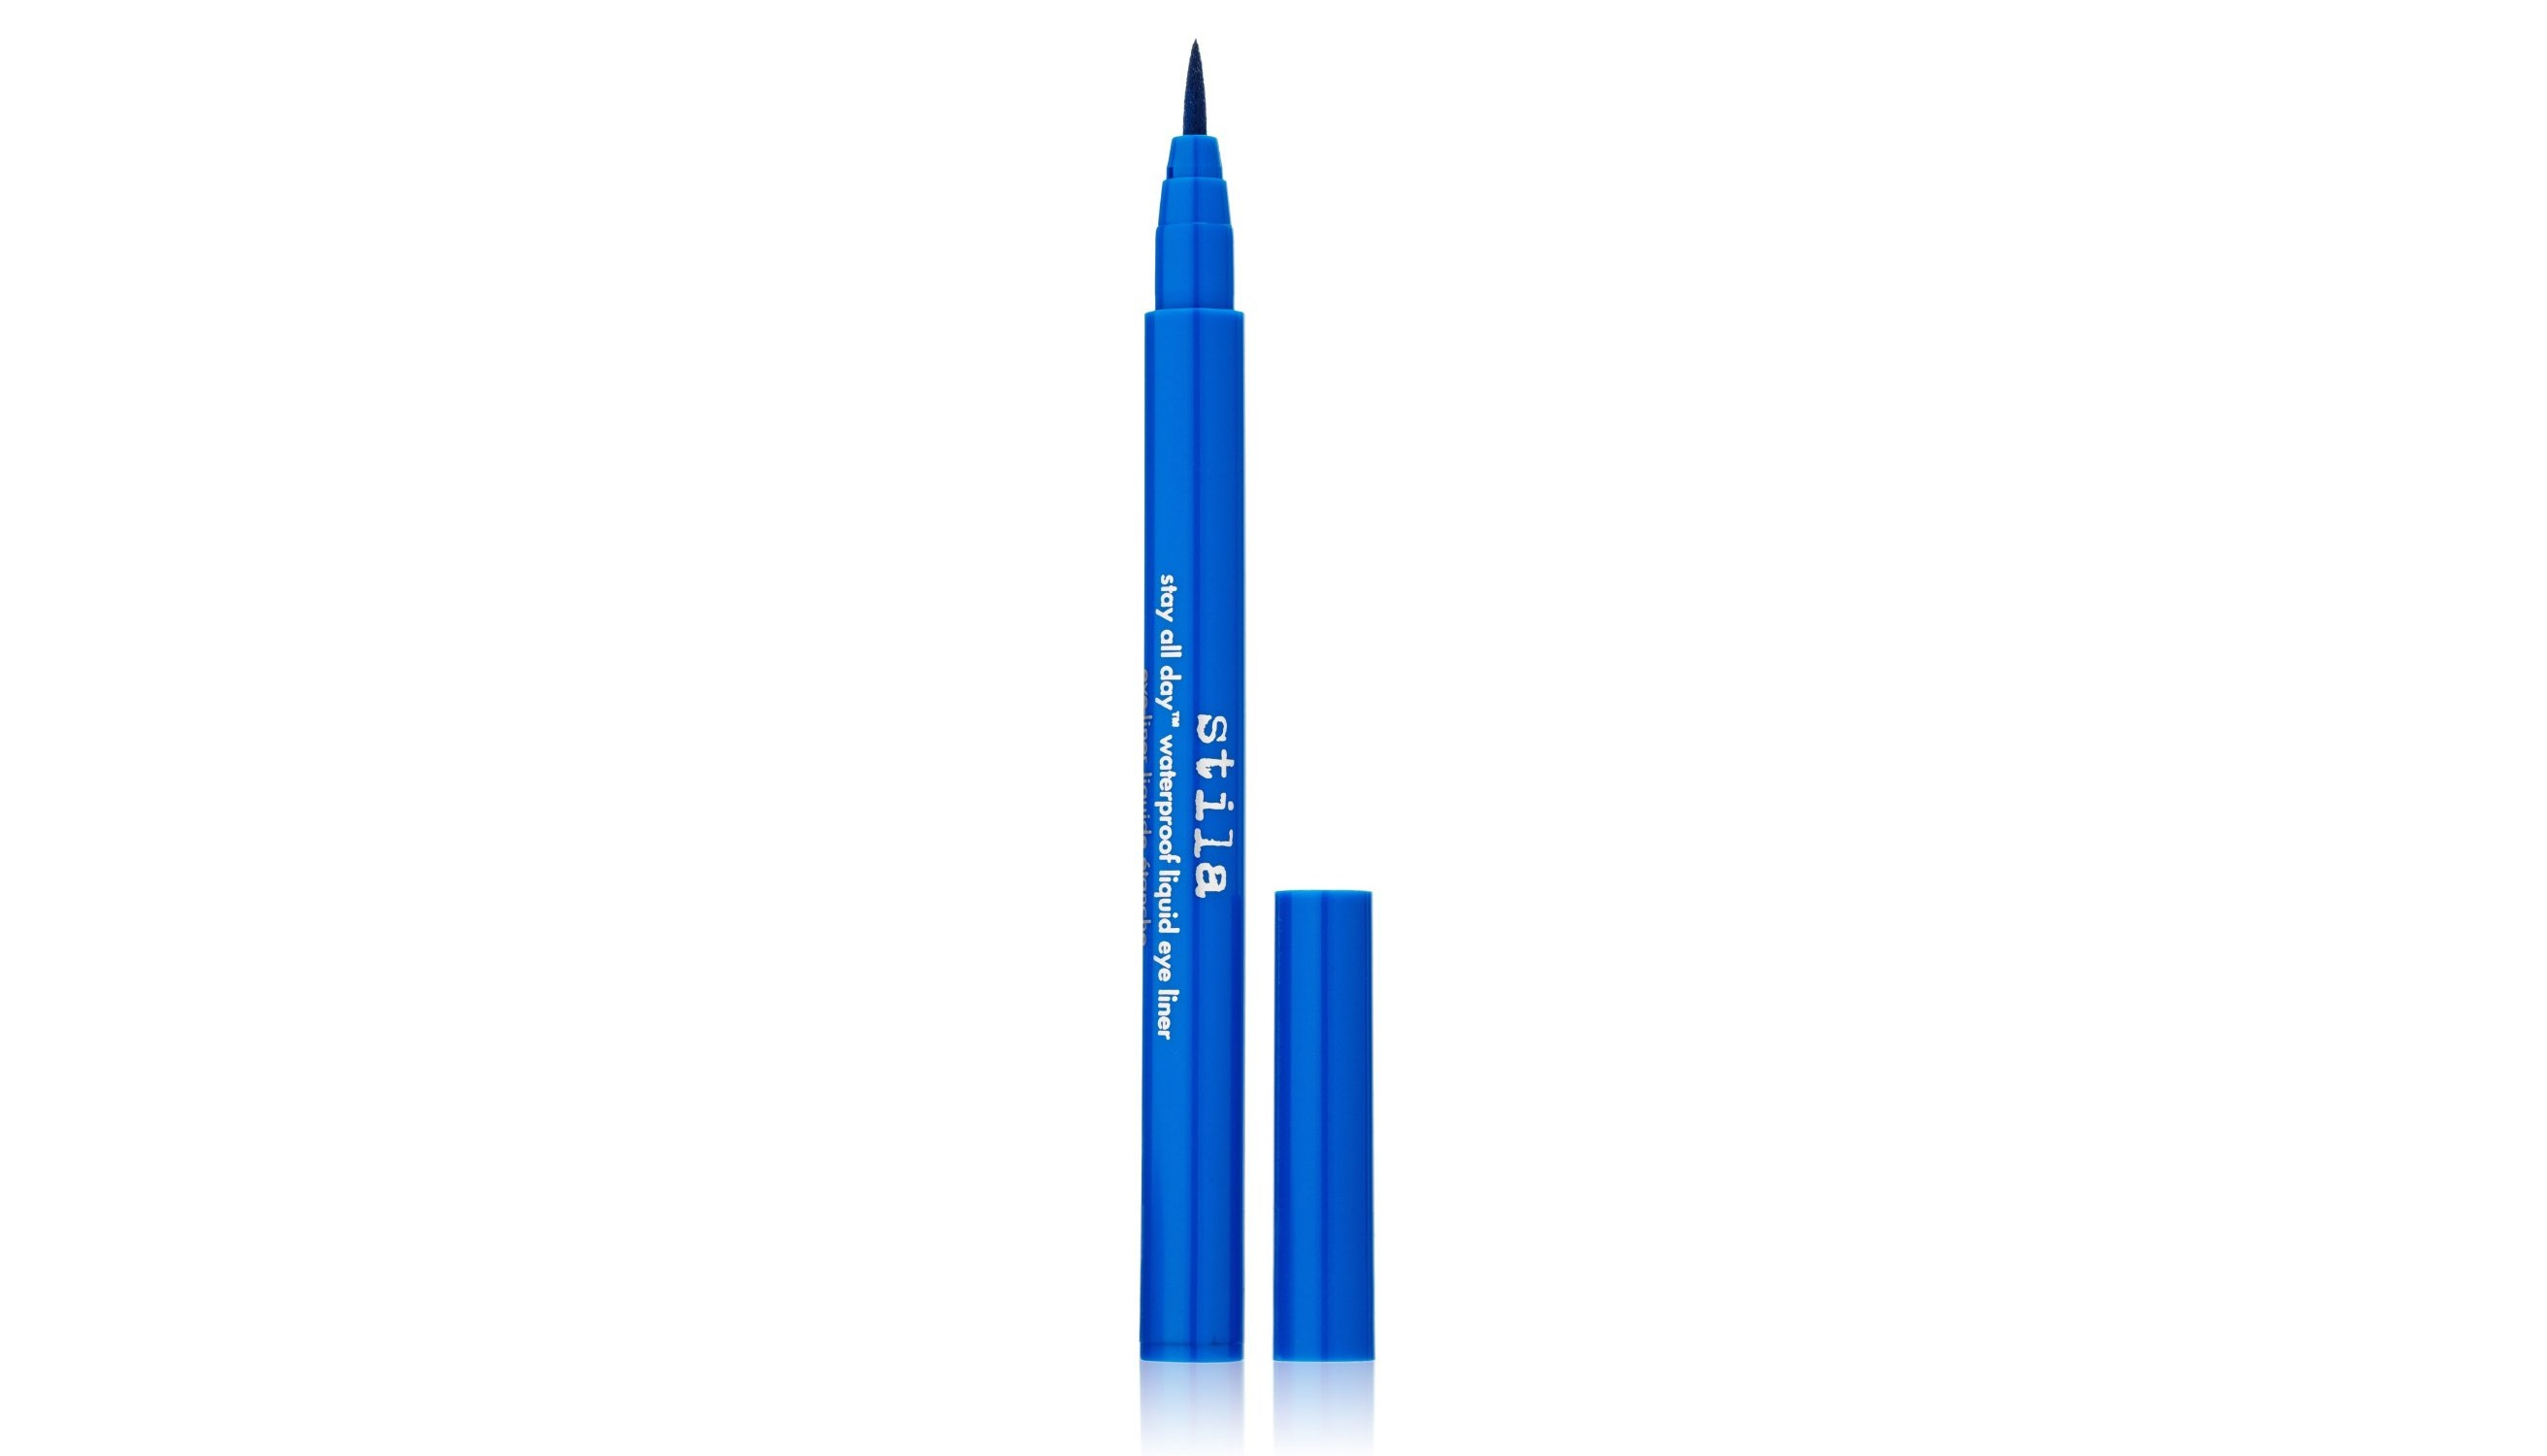 Best eyeliner for older women - Mary's fountain of youth